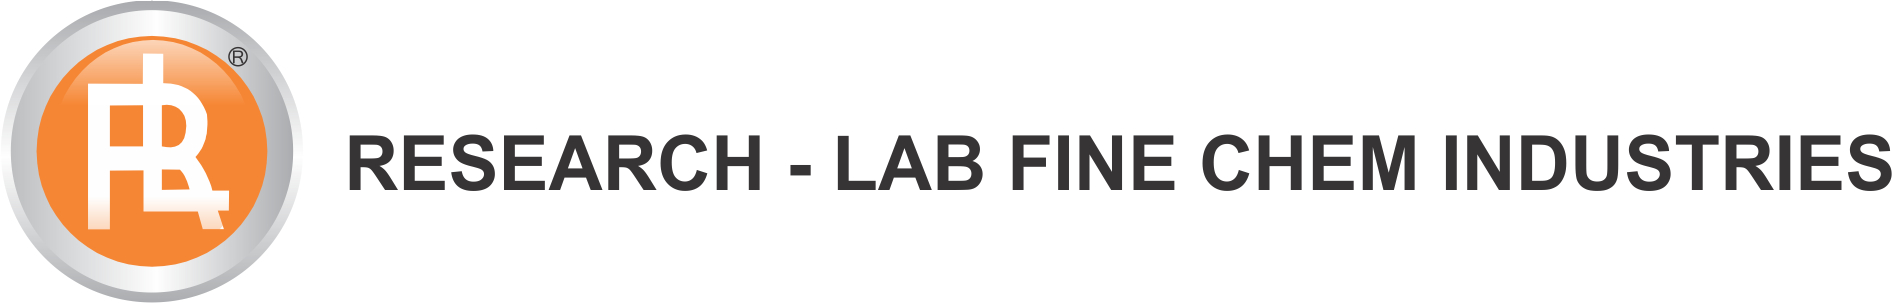 Research Lab Fine Chem Industries Cover Background